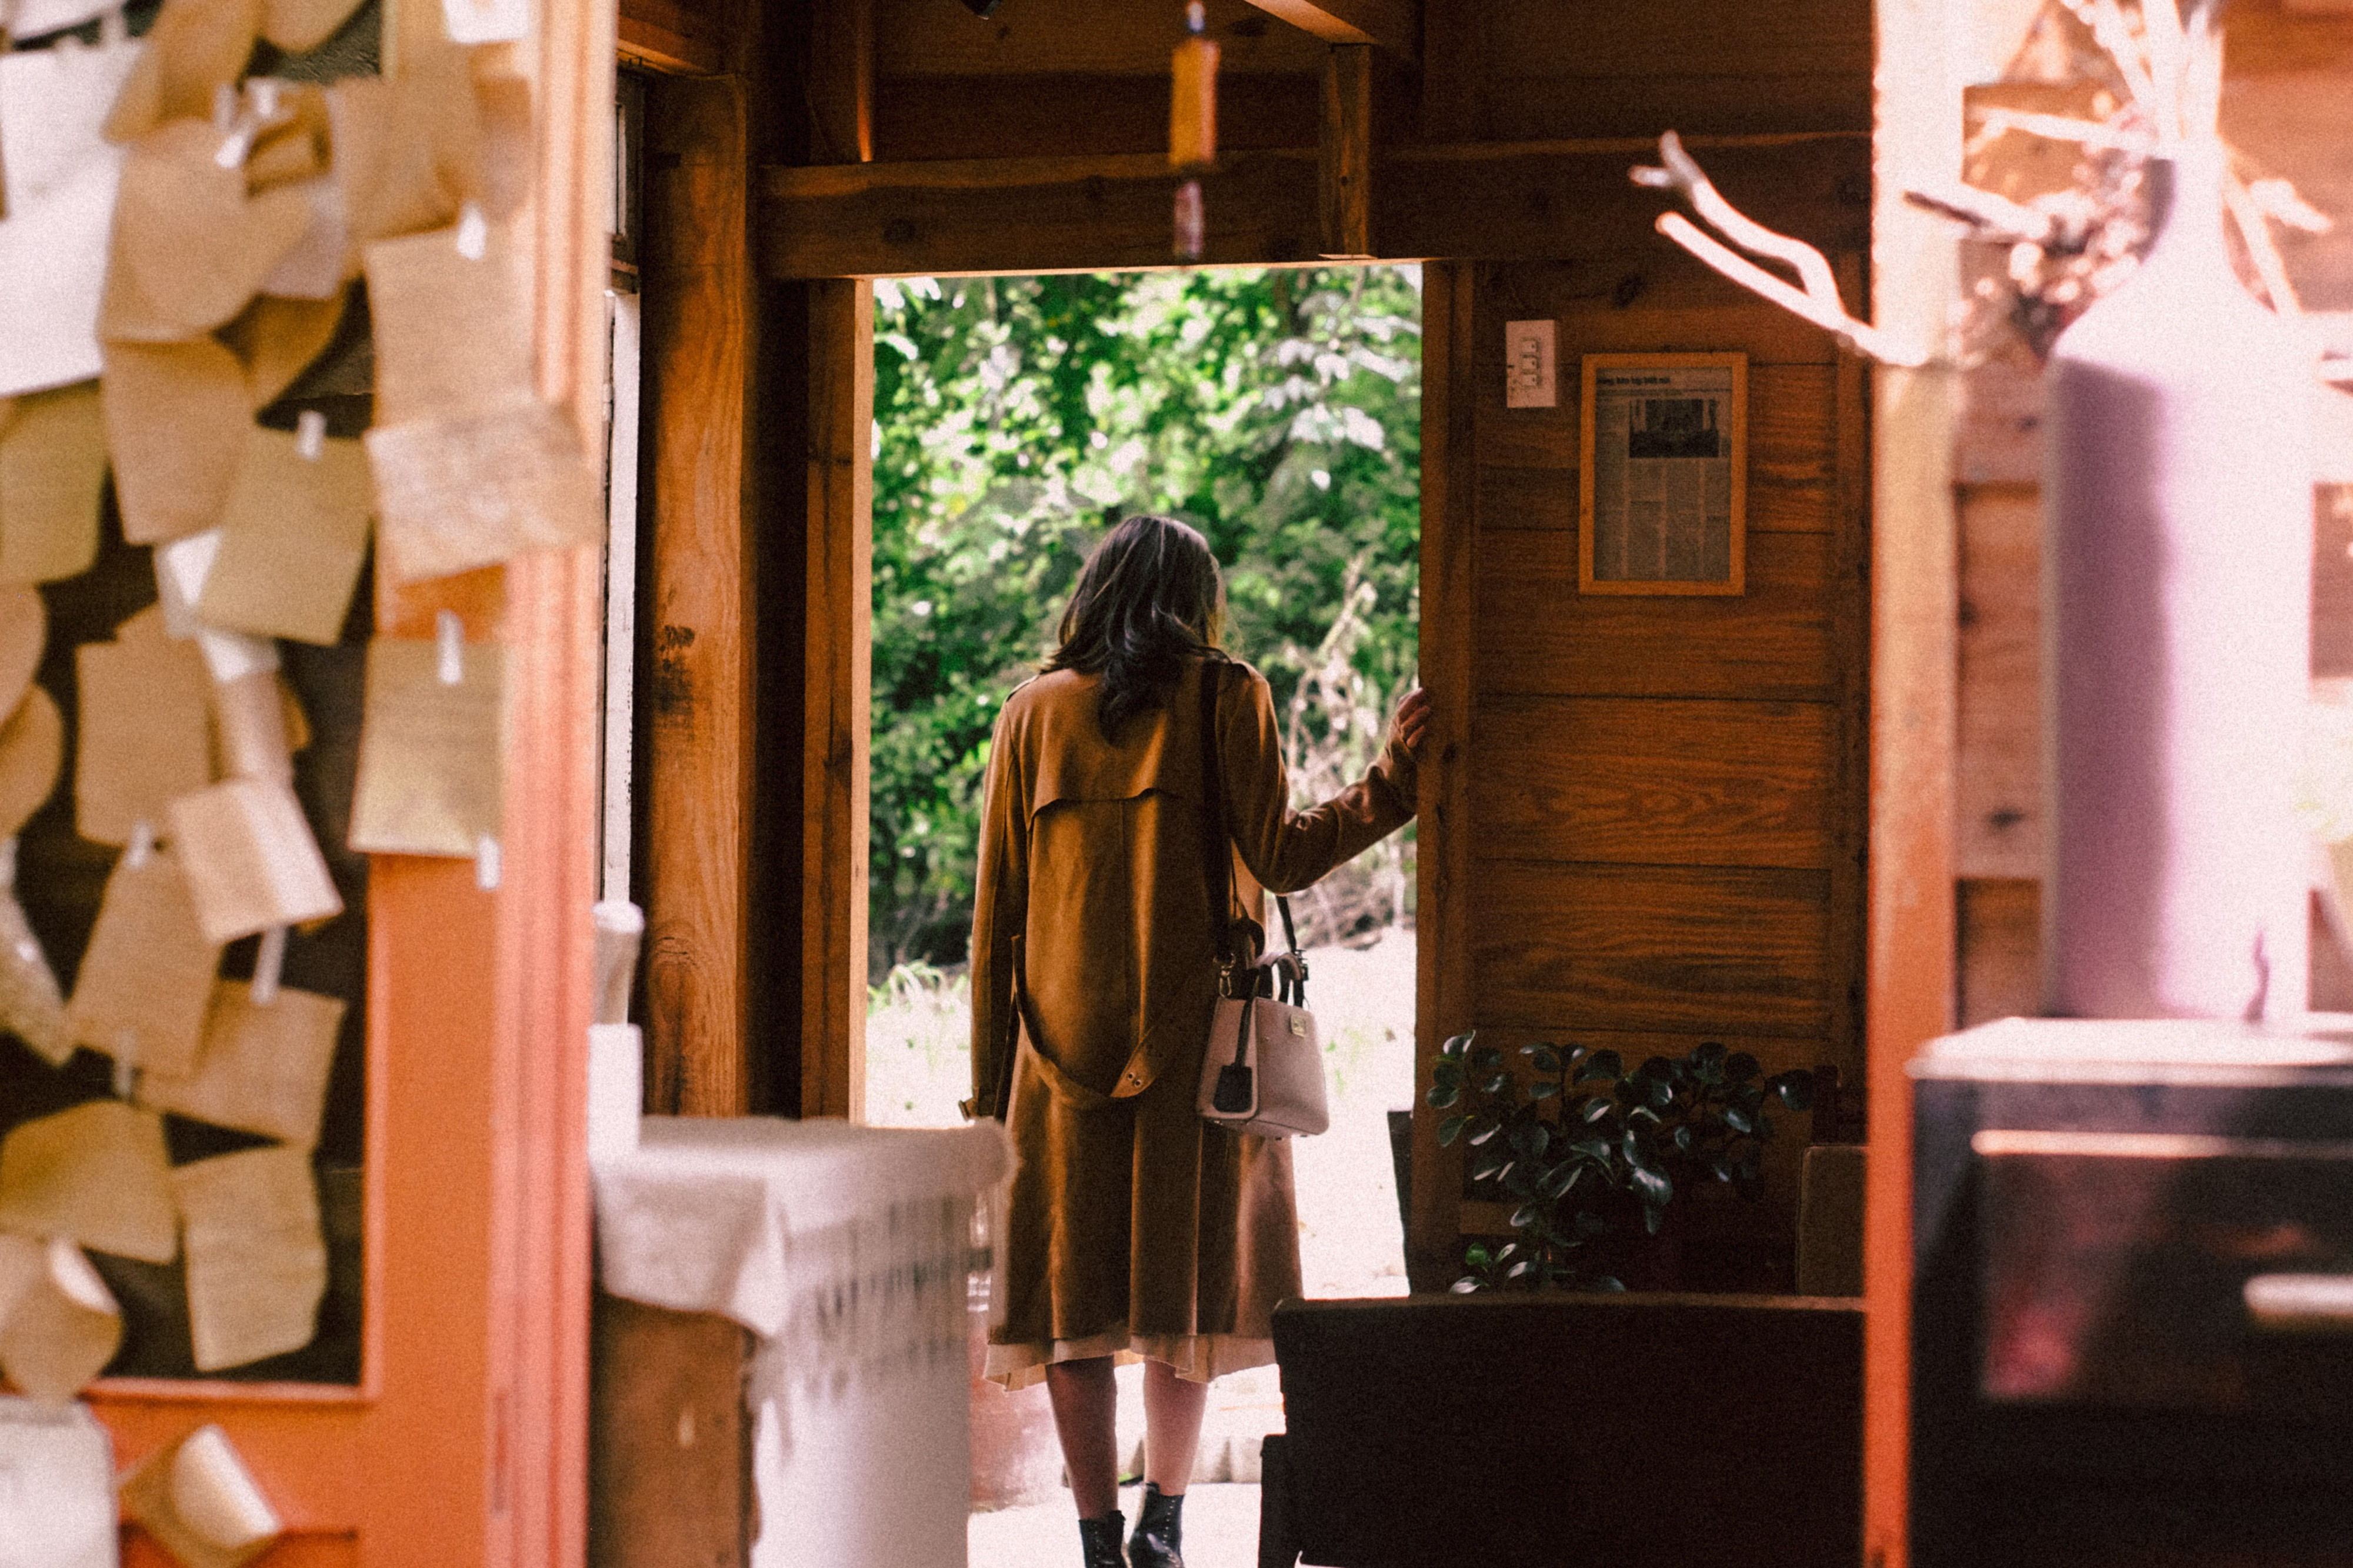 Woman about to leave an old house full of memories, paper and old items